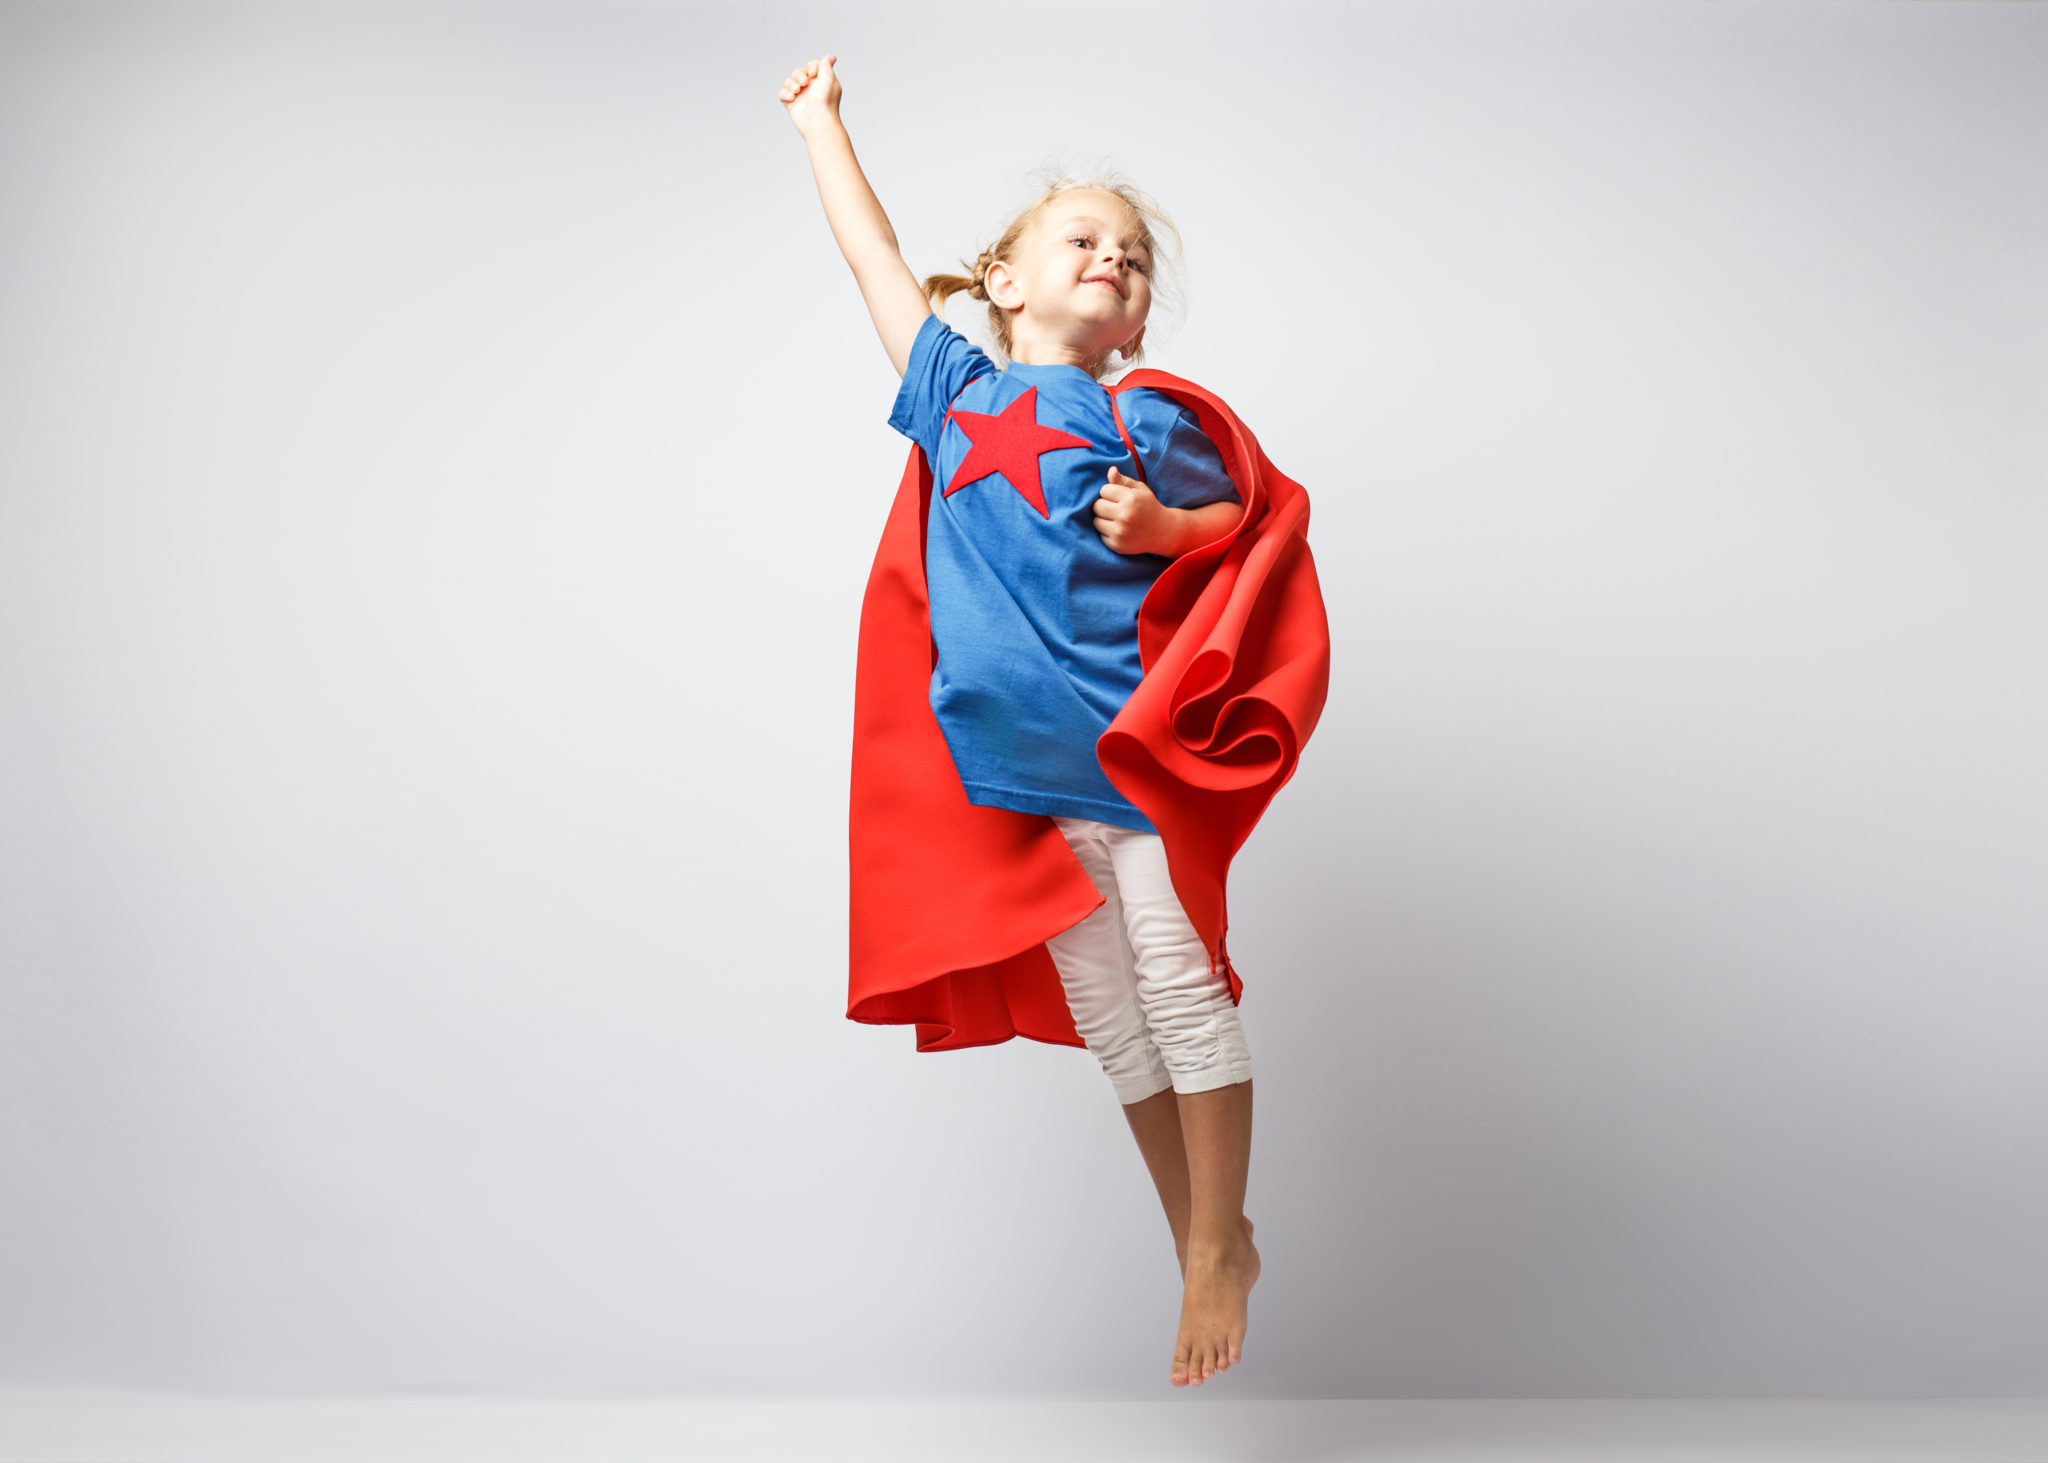 young girl dressed as superhero PLAYTIME